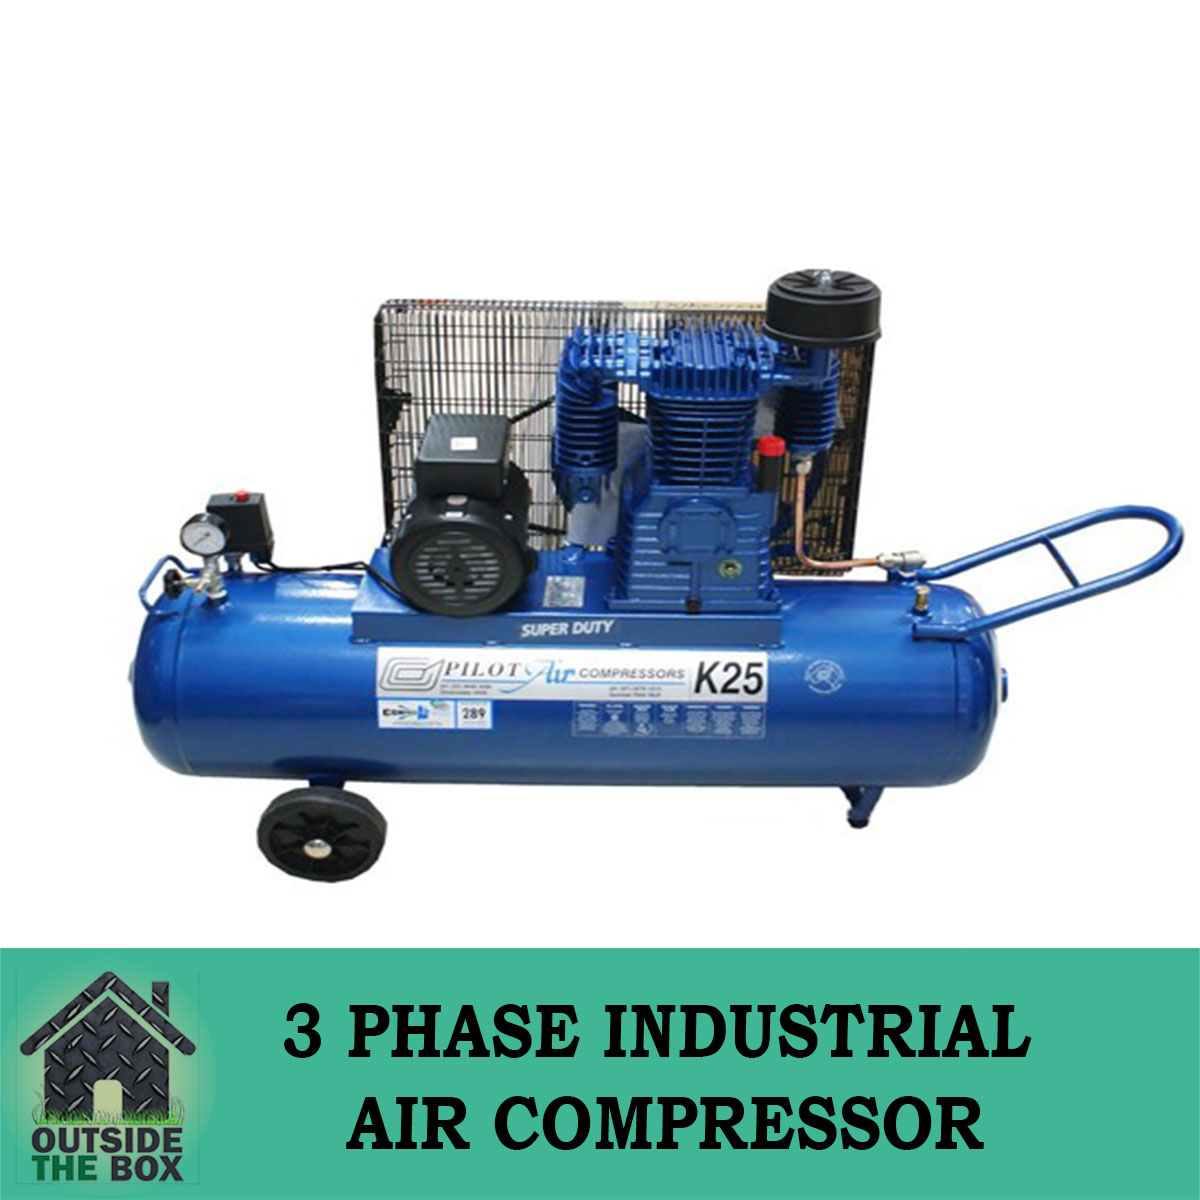 Details about Pilot K25L18 100LItre Tank Capacity 4HP Motor 3 Phase  Industrial Air Compressor